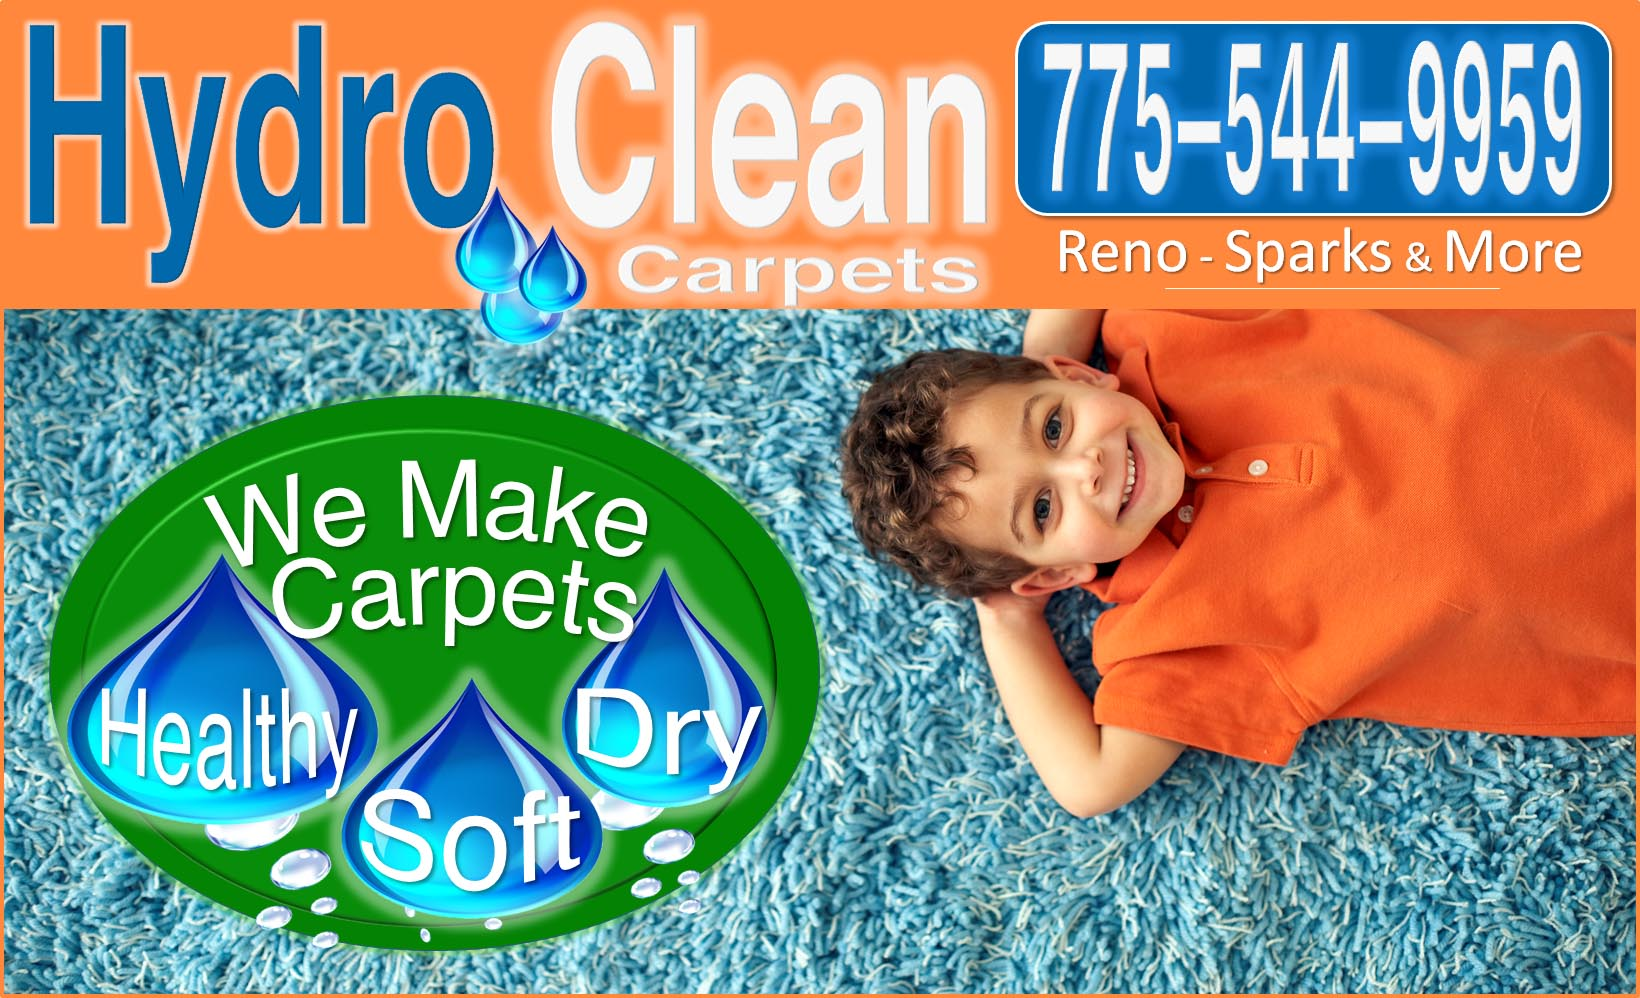 HydroClean Carpet Cleaning Reno Nevada and Sparks Nevada 775 544-9959